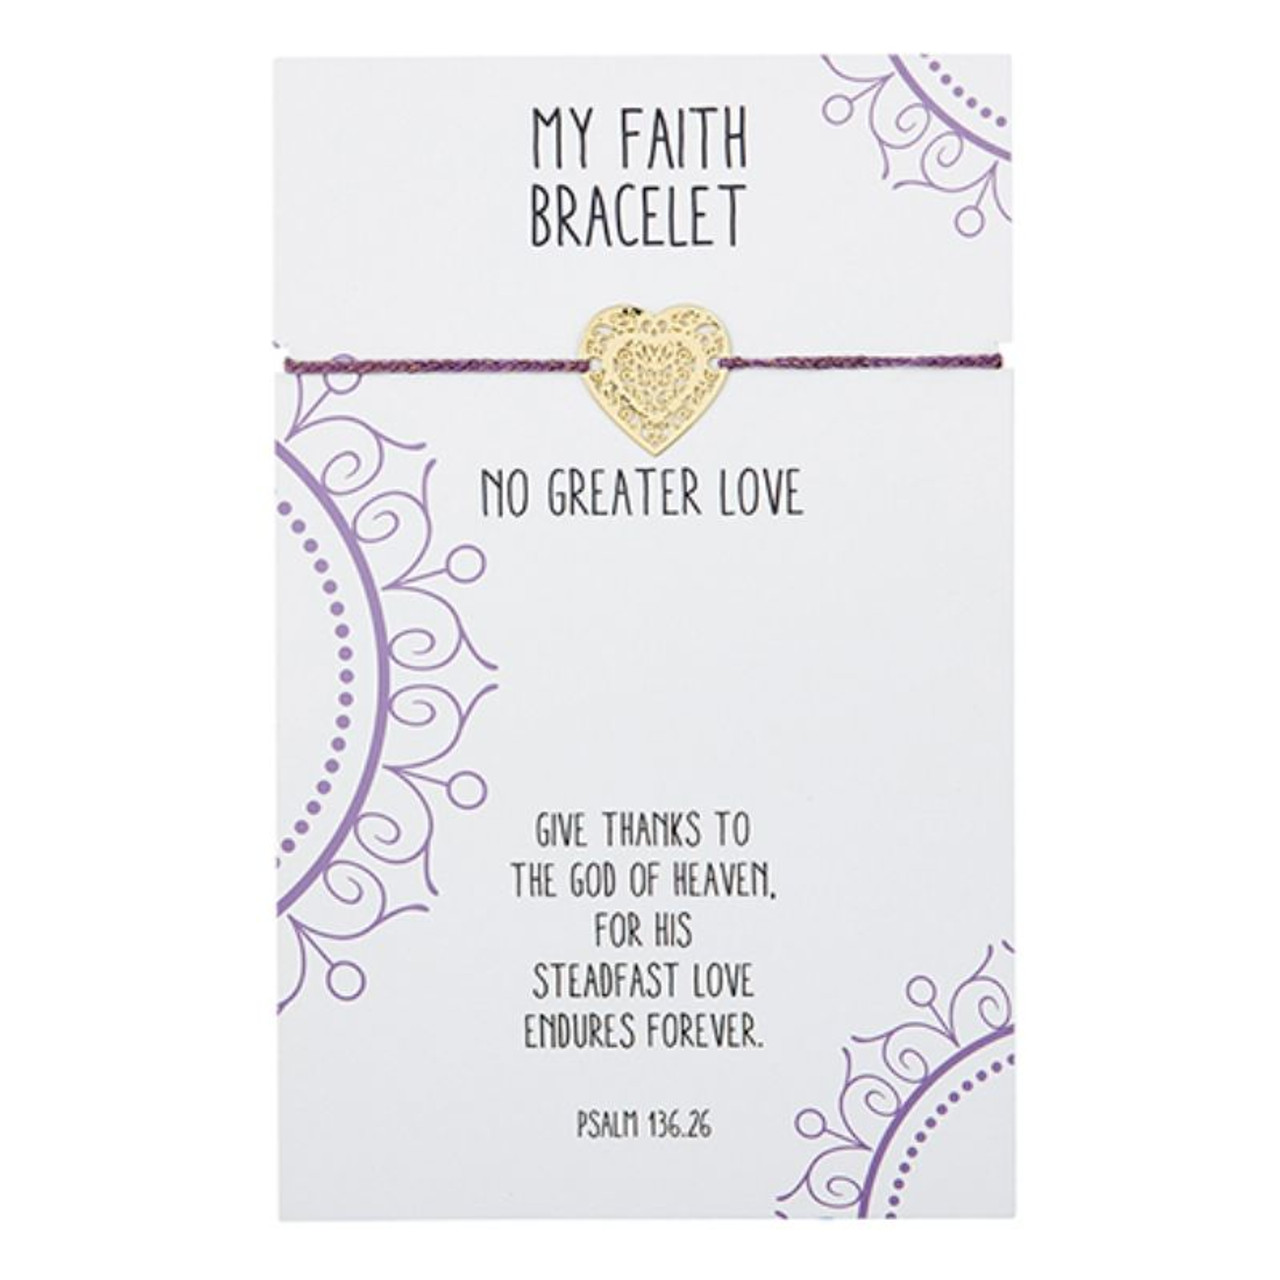 Beautifully designed, this easy to wear adjustable bracelet with center brass filigree heart charm is great to wear alone or stacked with other bracelets. A thoughtful gift at an attractive price point! Backer card includes corresponding Bible verse Psalm 136:26.